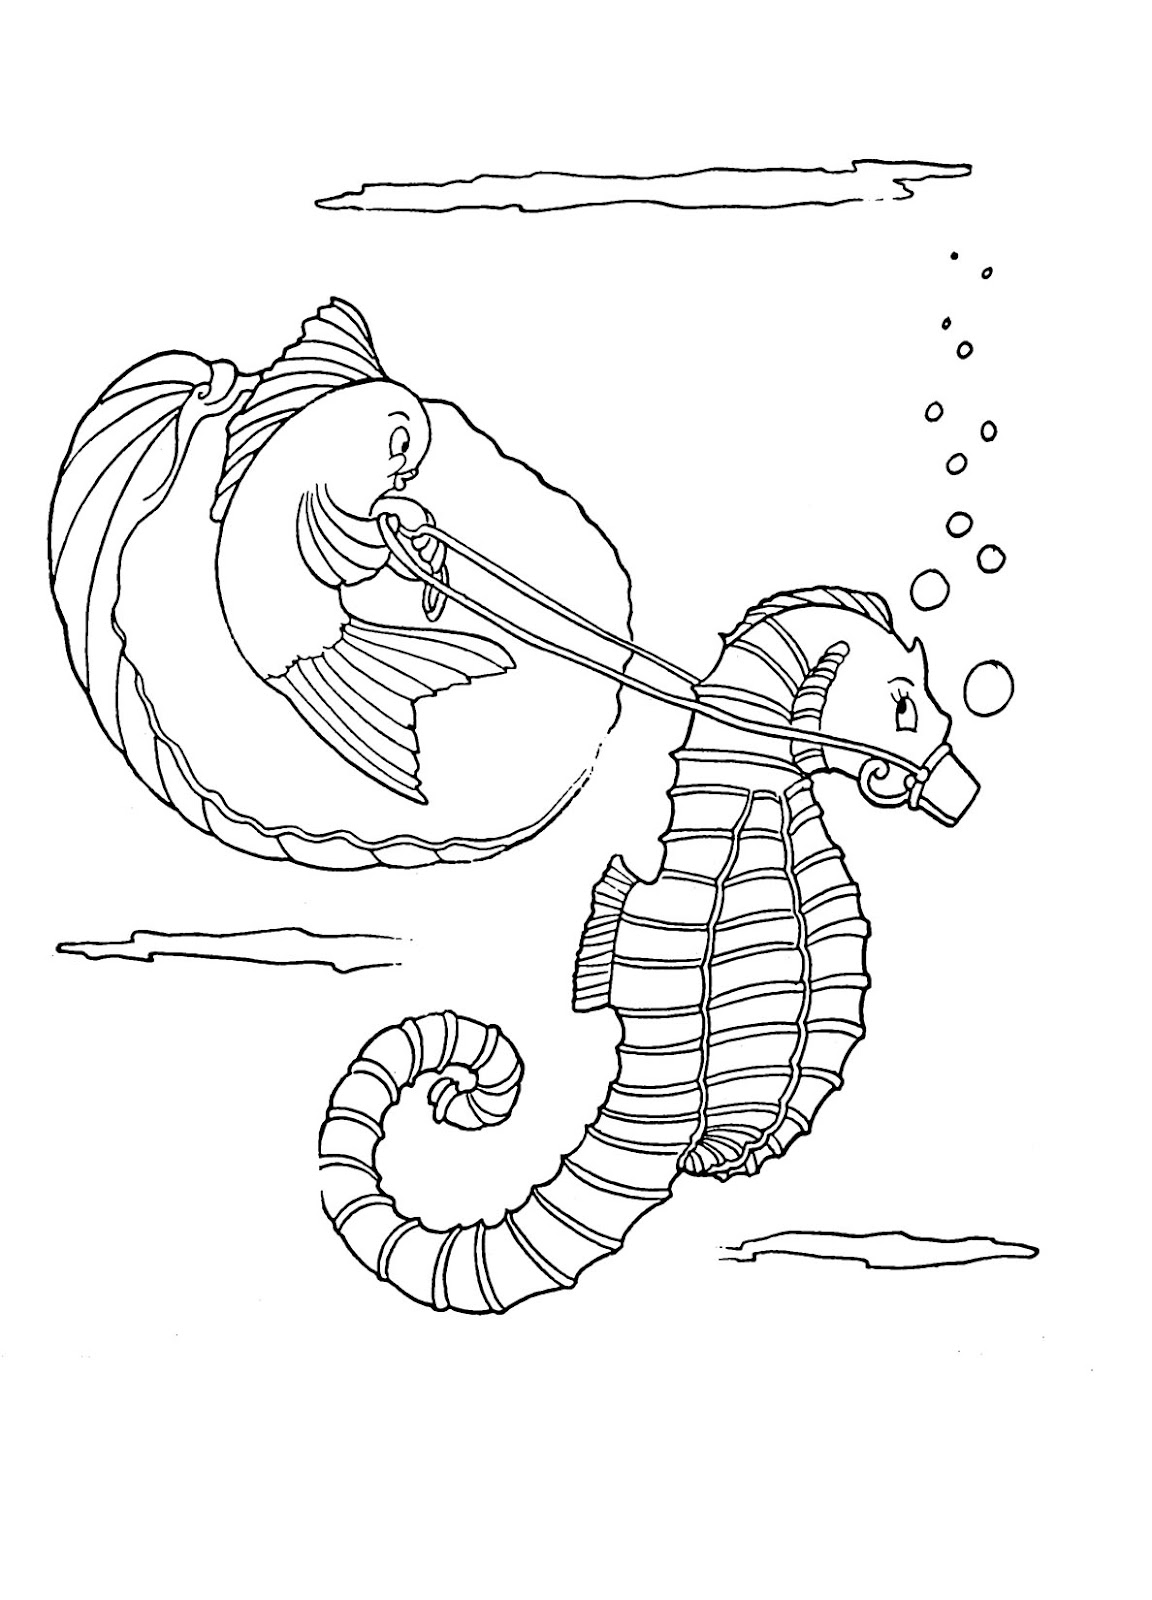 graphical coloring pages - photo#16